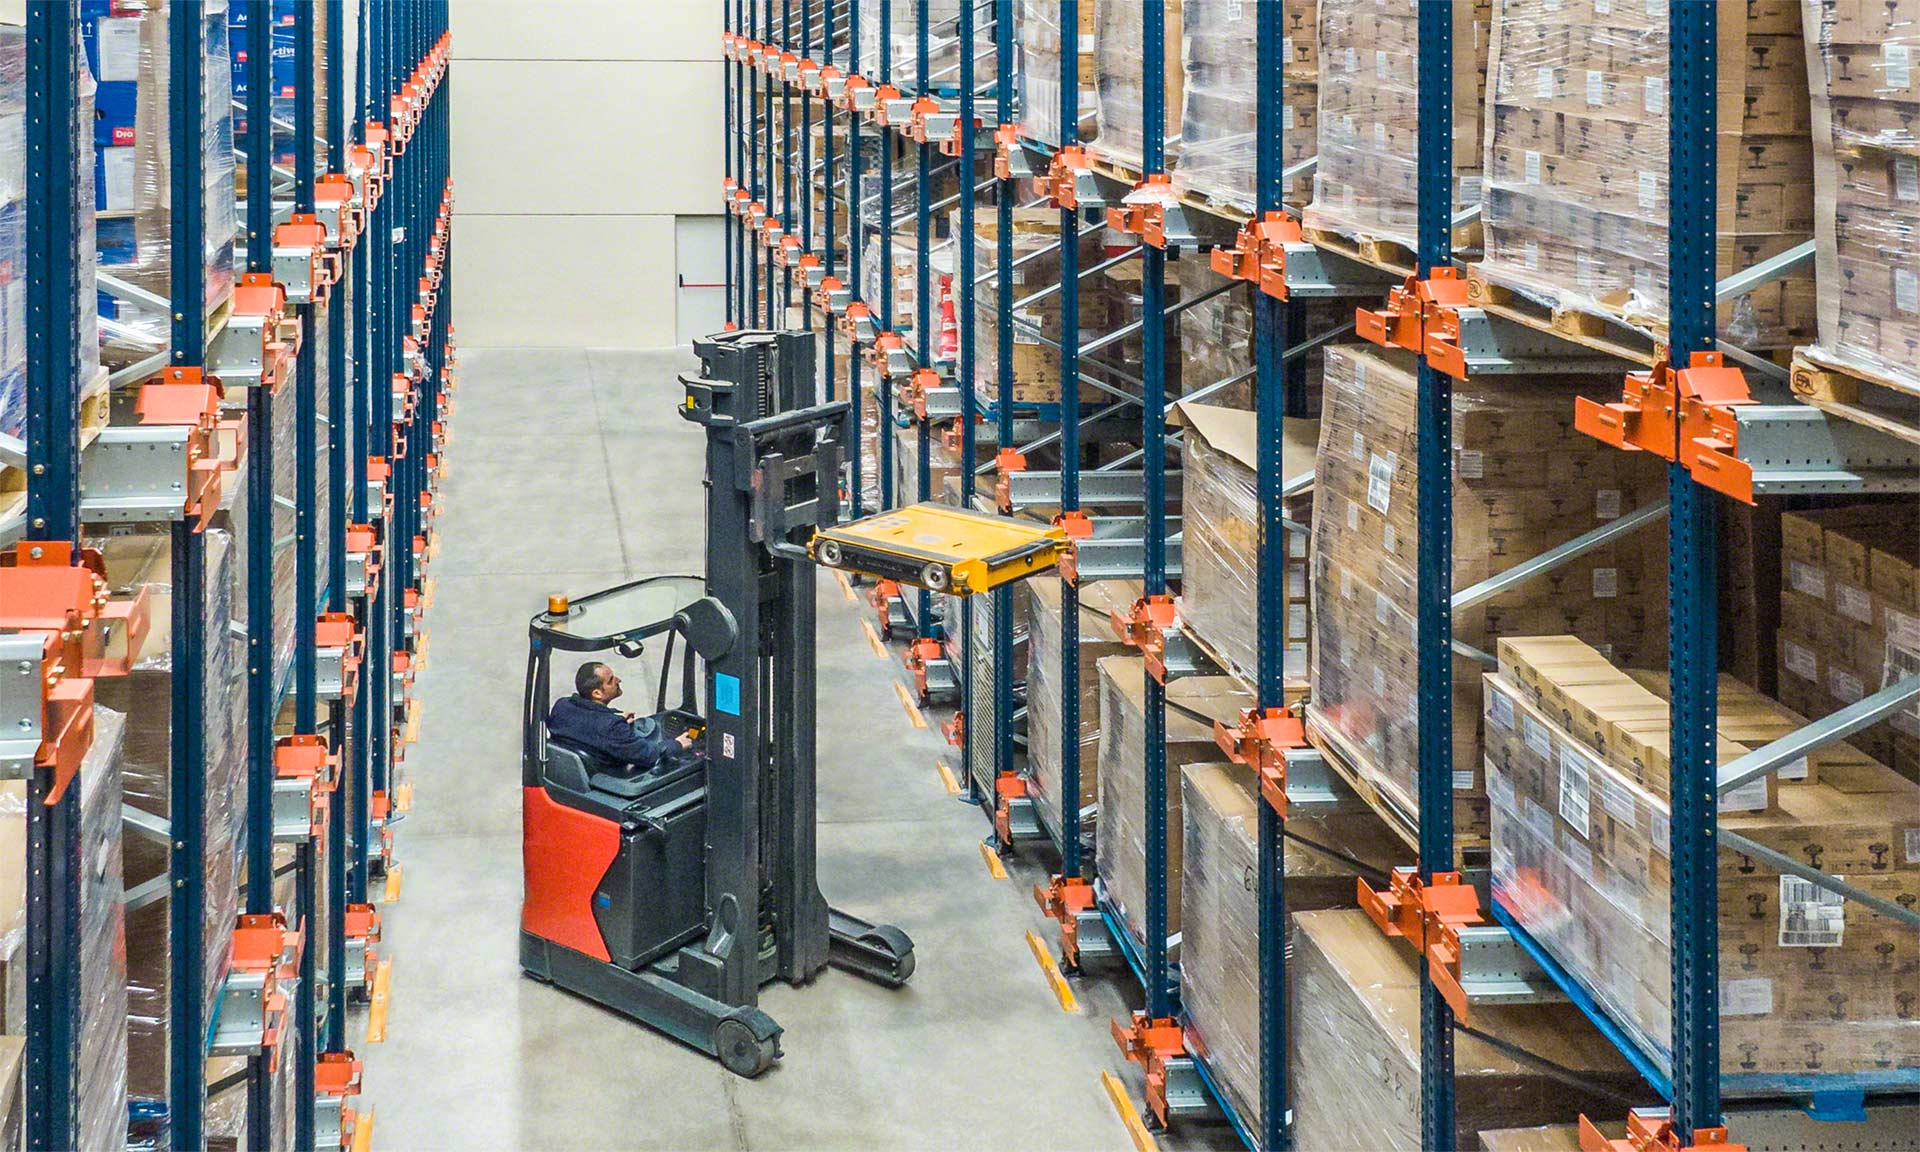 Semi-automated warehouse: technology and the human factor combined